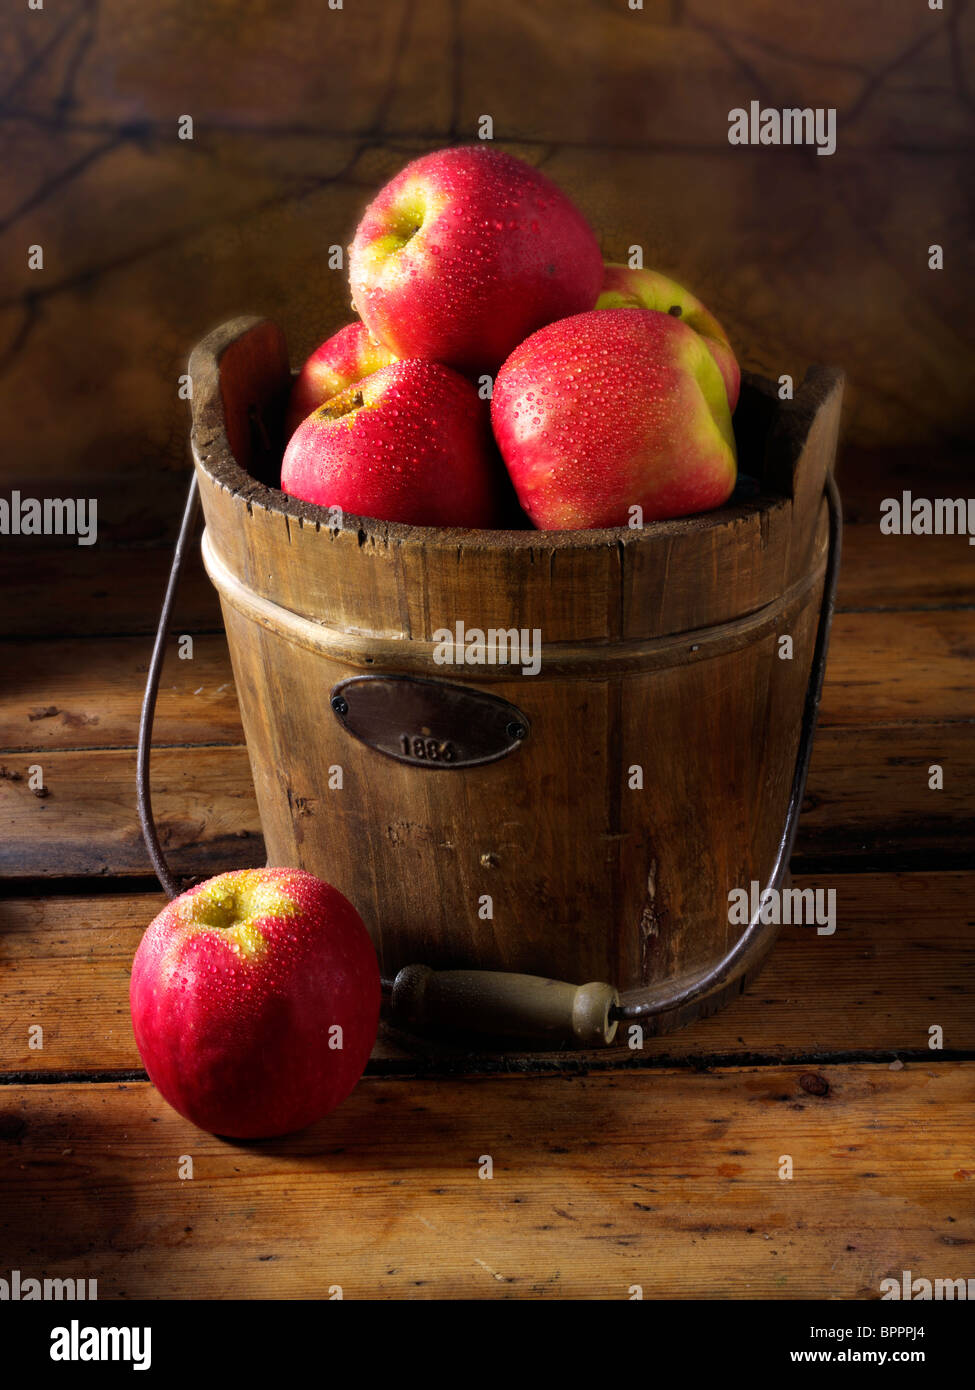 Pink Lady apples photos, pictures & images - Stock Image